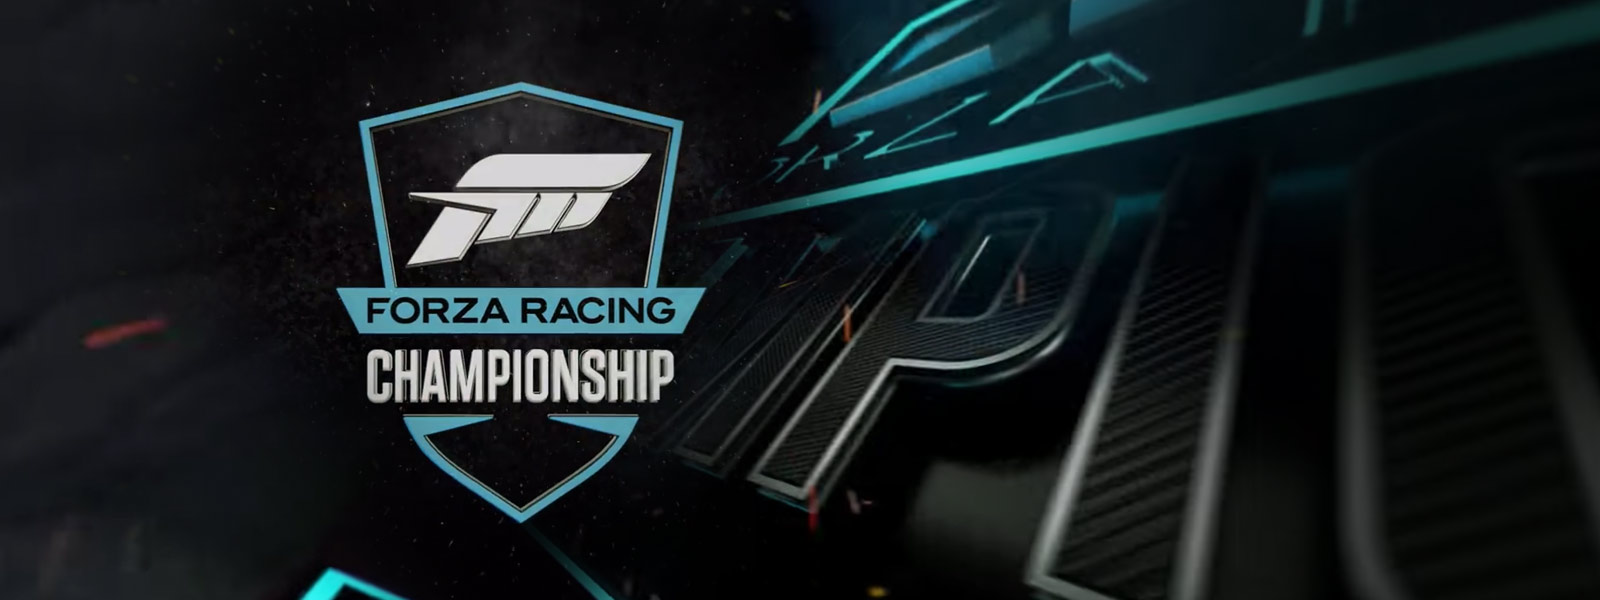 Forza Racing Championship, close-up van gestructureerd racing championship-logo